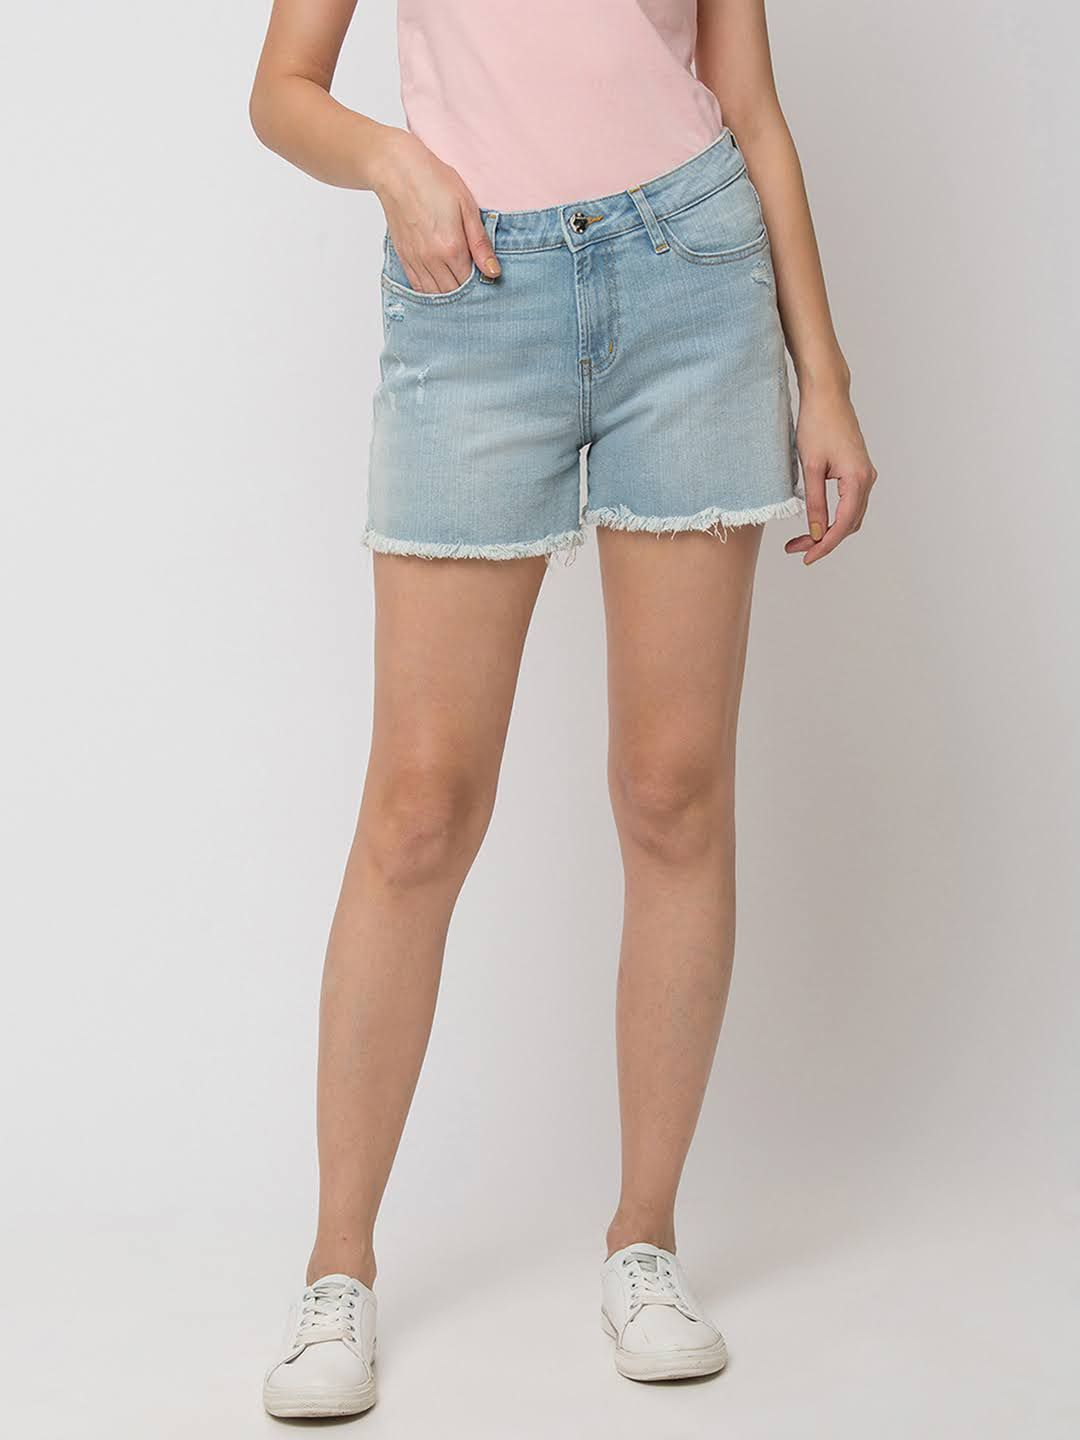 SPYKAR ICE BLUE Cotton SHORTS JEANS